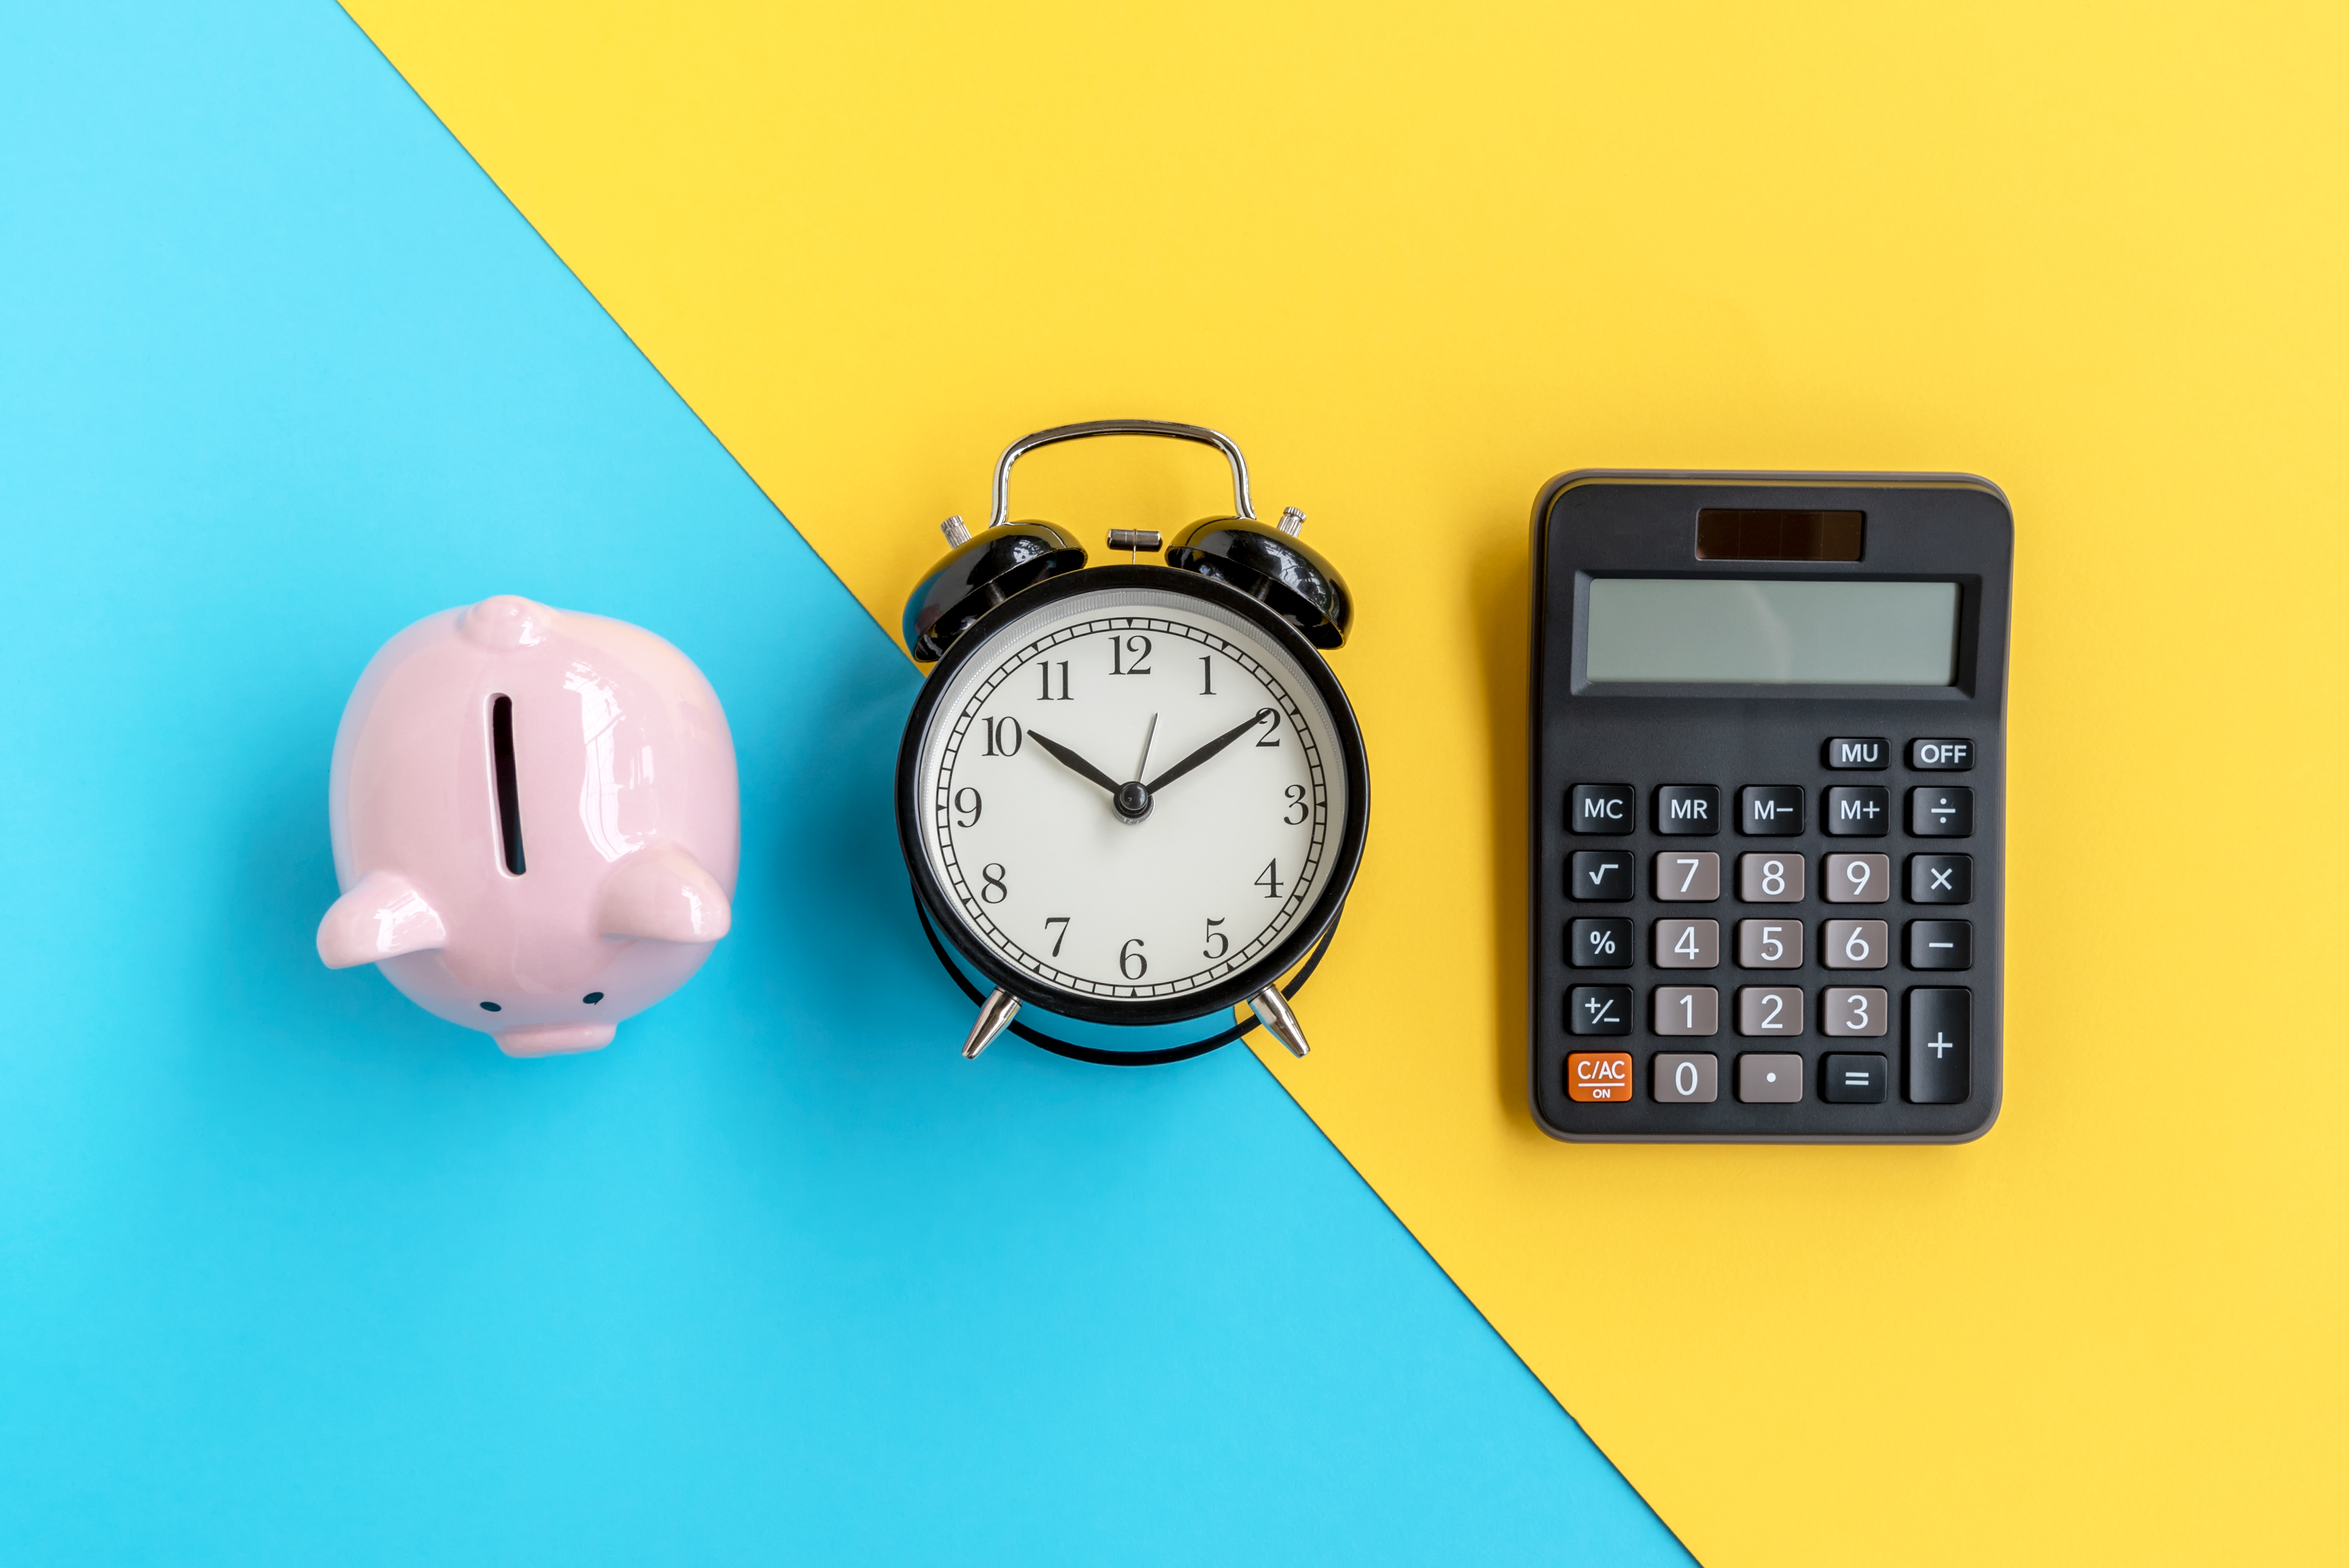 Image of a piggy bank, clock, and calculator on blue and yellow background to represent financial advice.